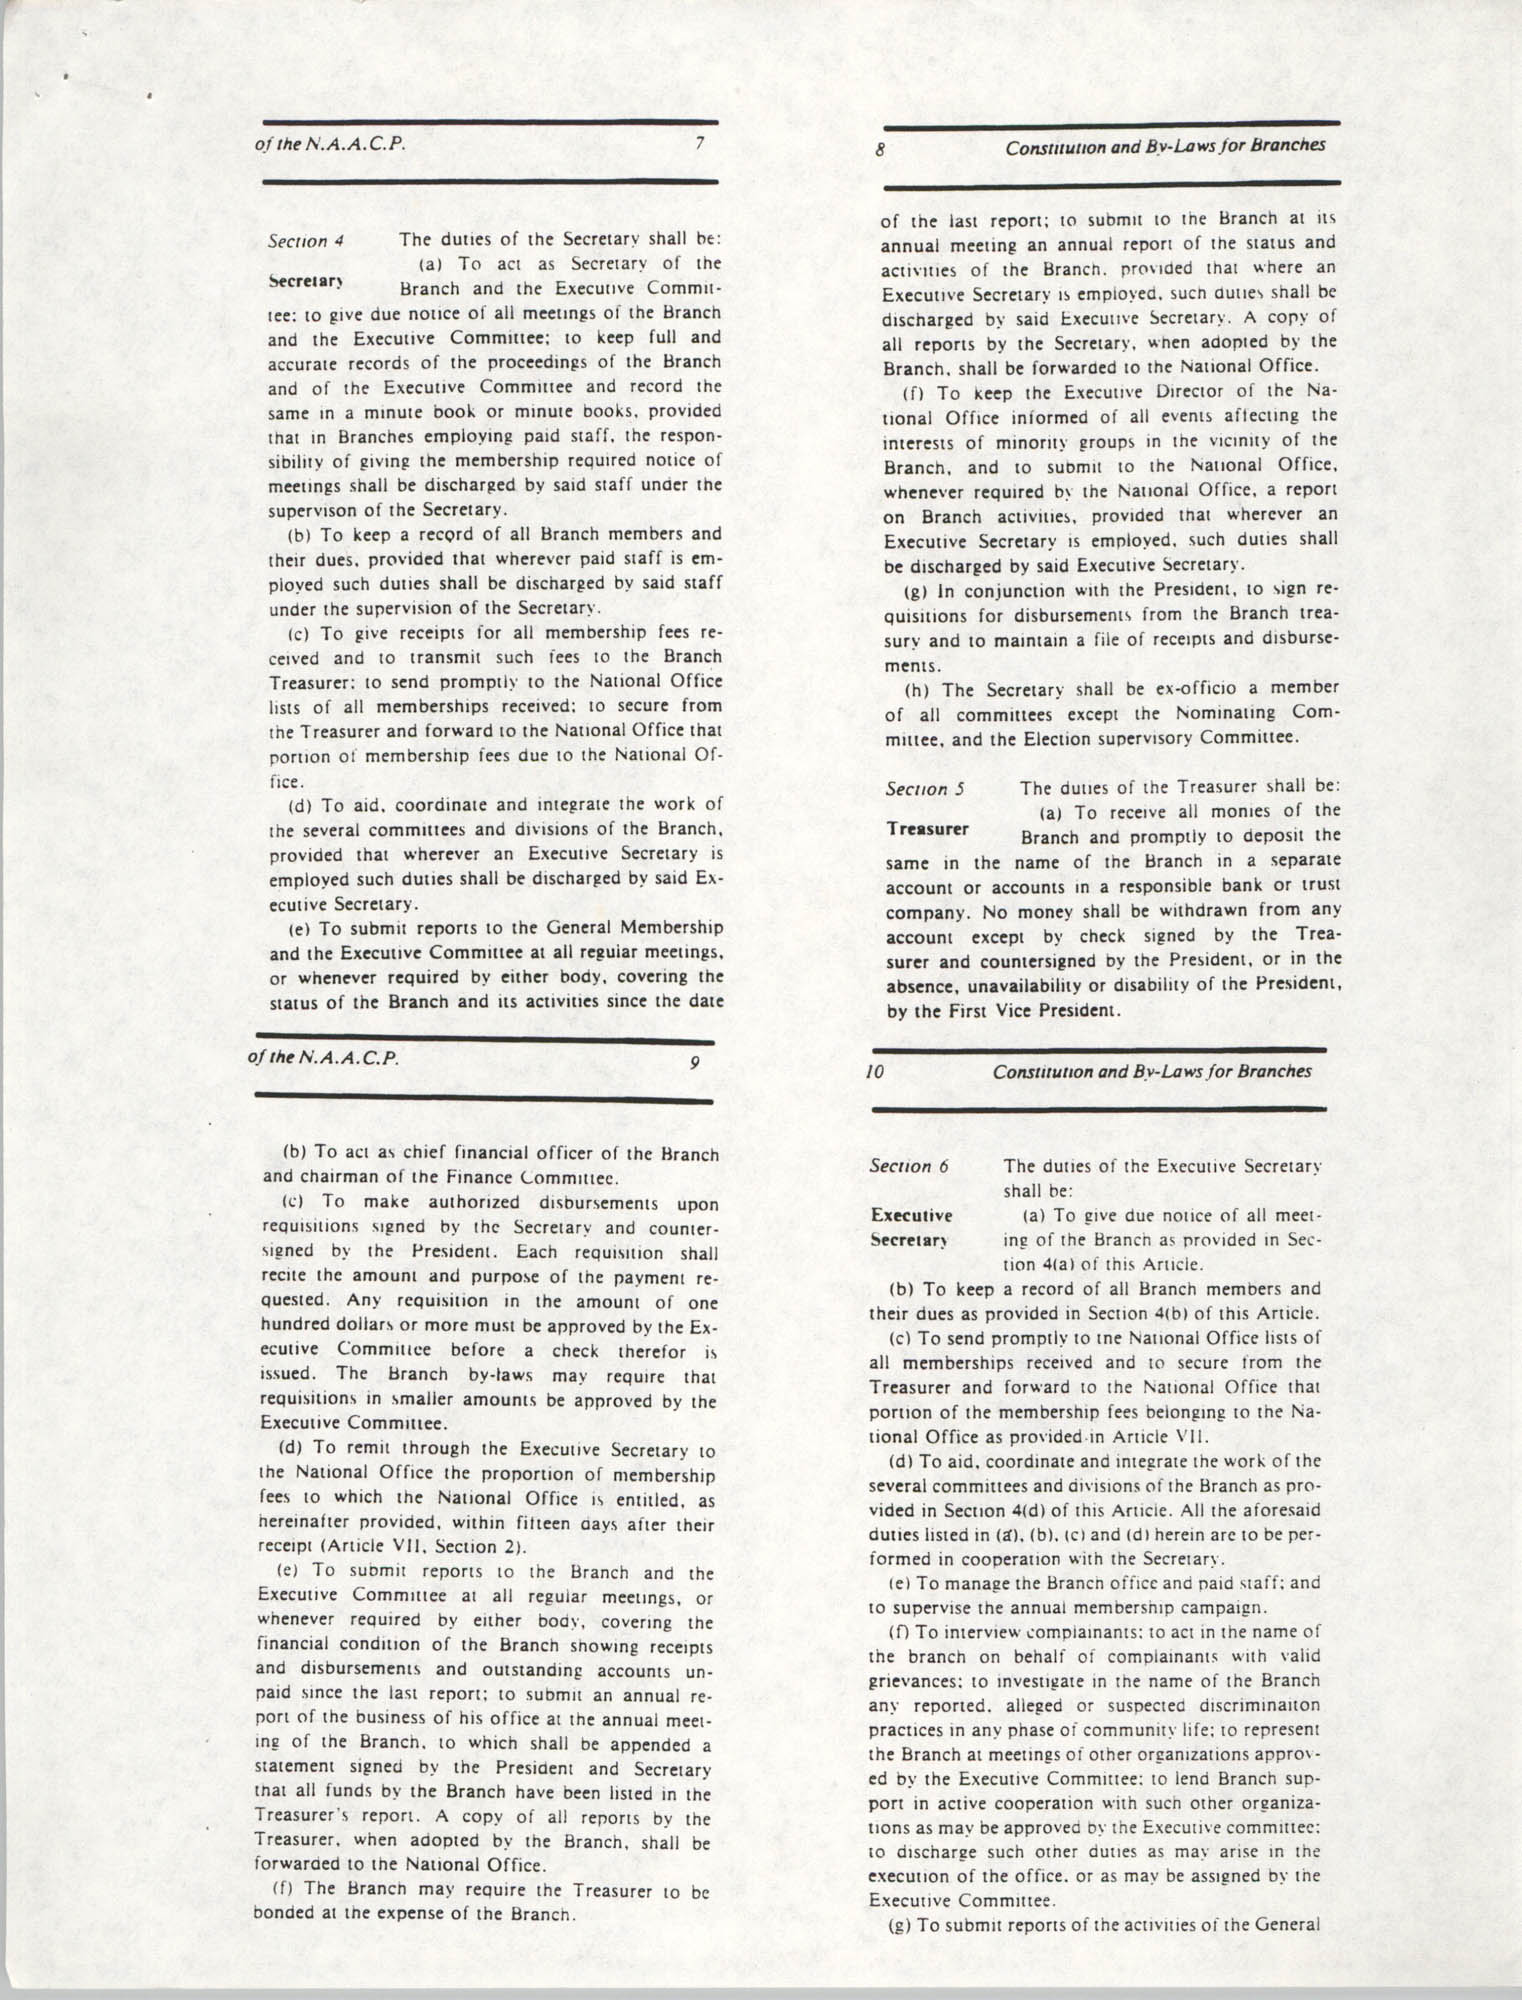 Constitution and By-Laws for Branches of the NAACP, May 1988, Pages 7-10